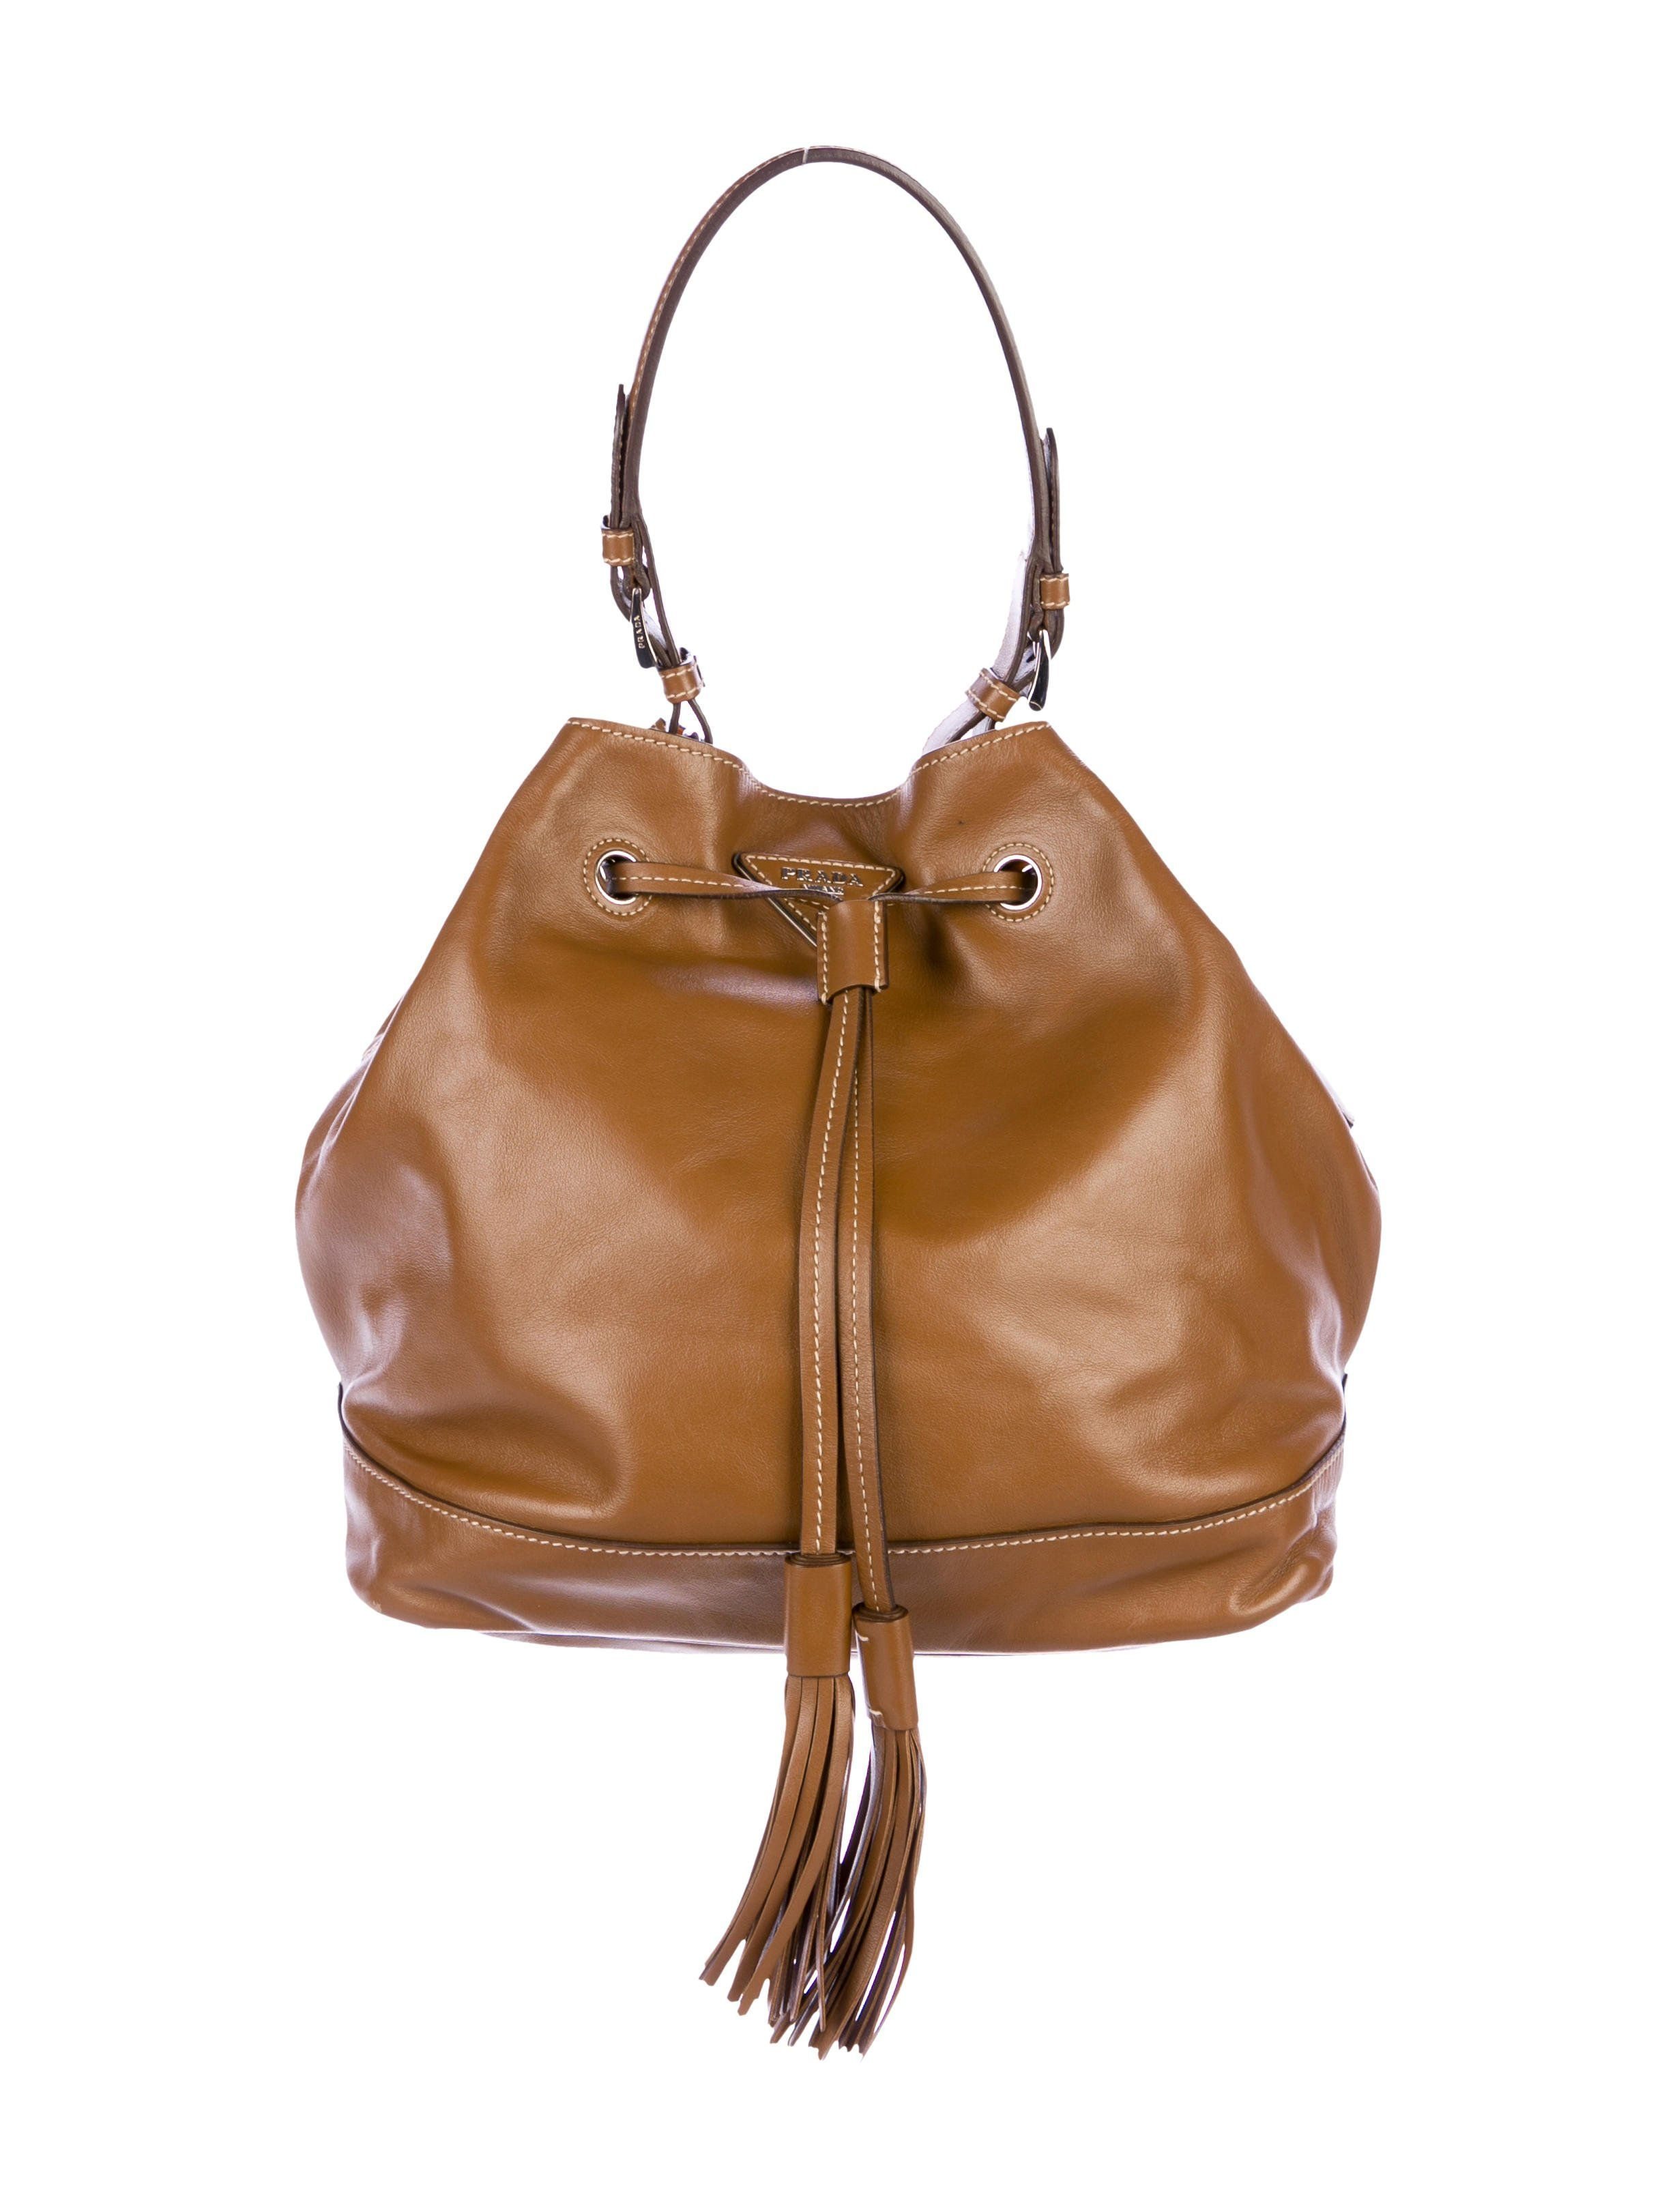 c5e0cdd9b766 Prada Soft Calf Bucket Bag - Handbags - PRA208922